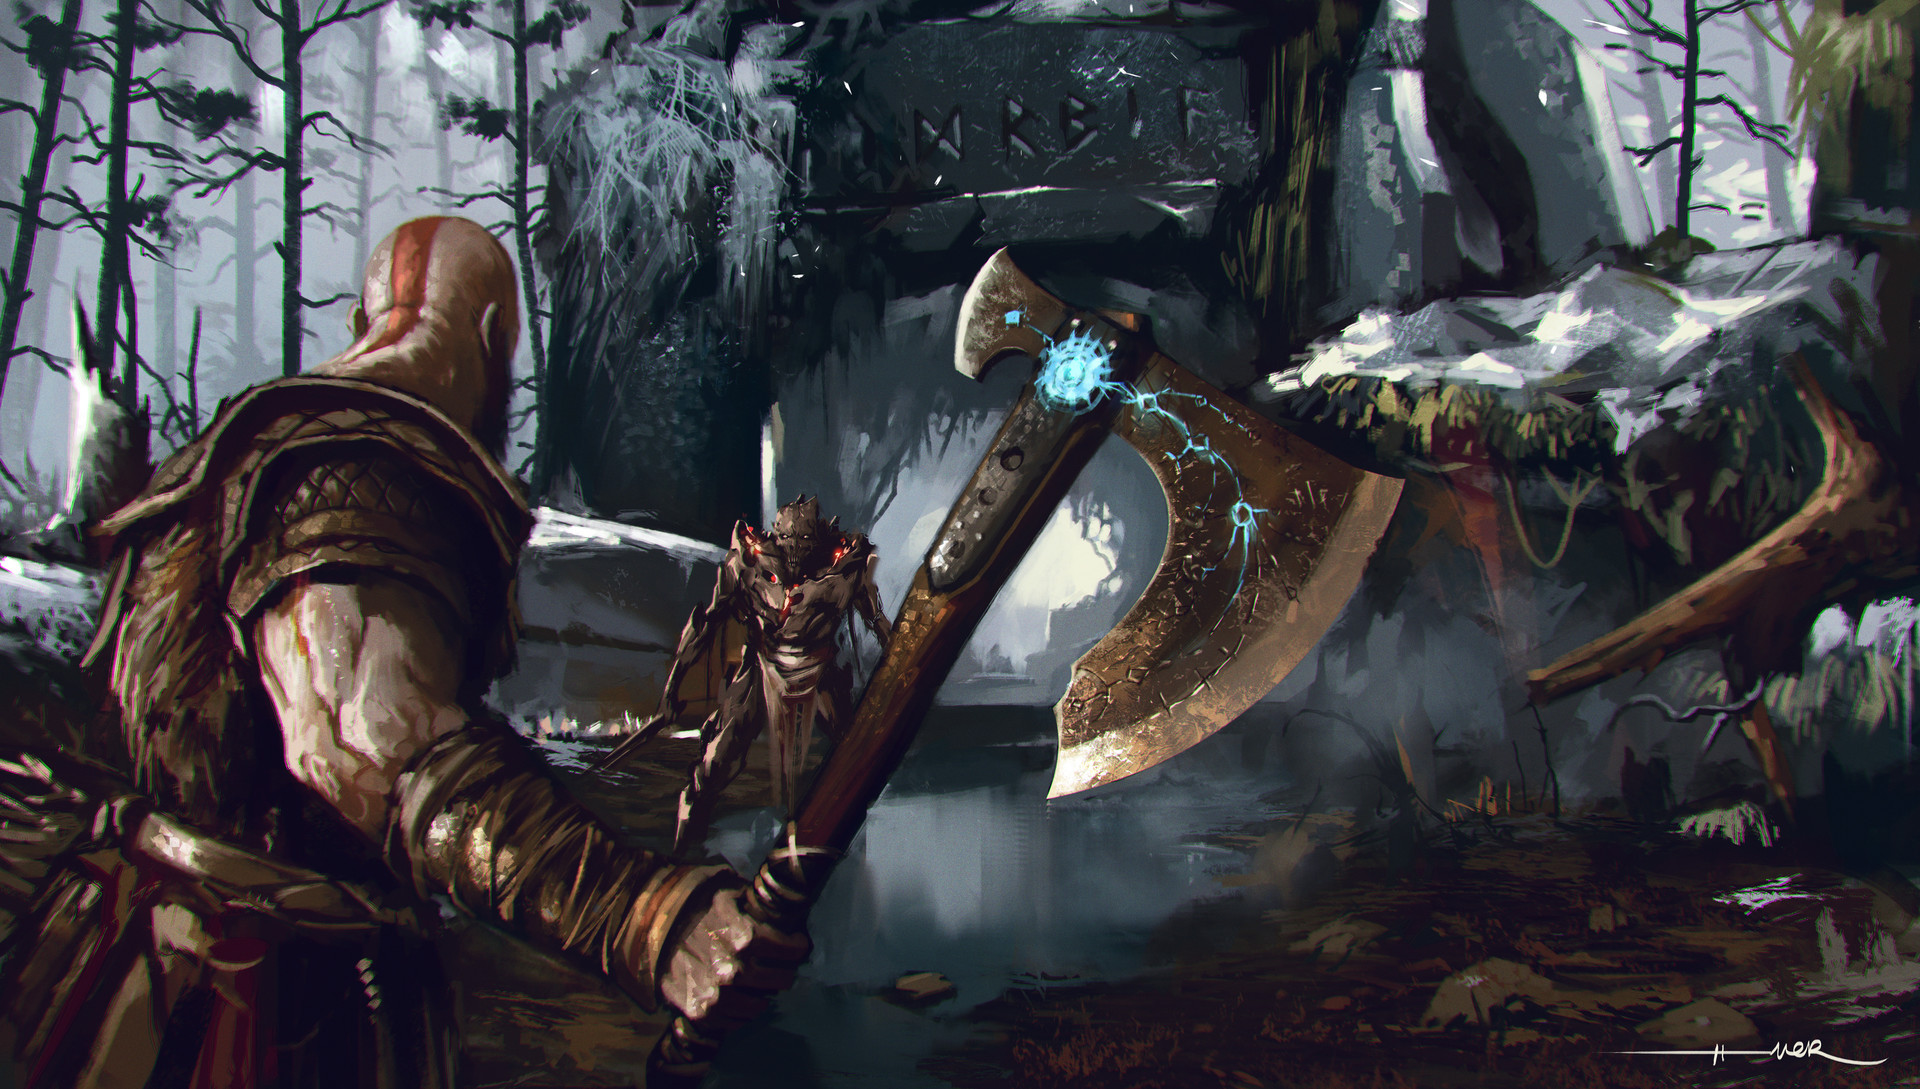 God of war art hd games 4k wallpapers images - 4k wallpaper of god ...